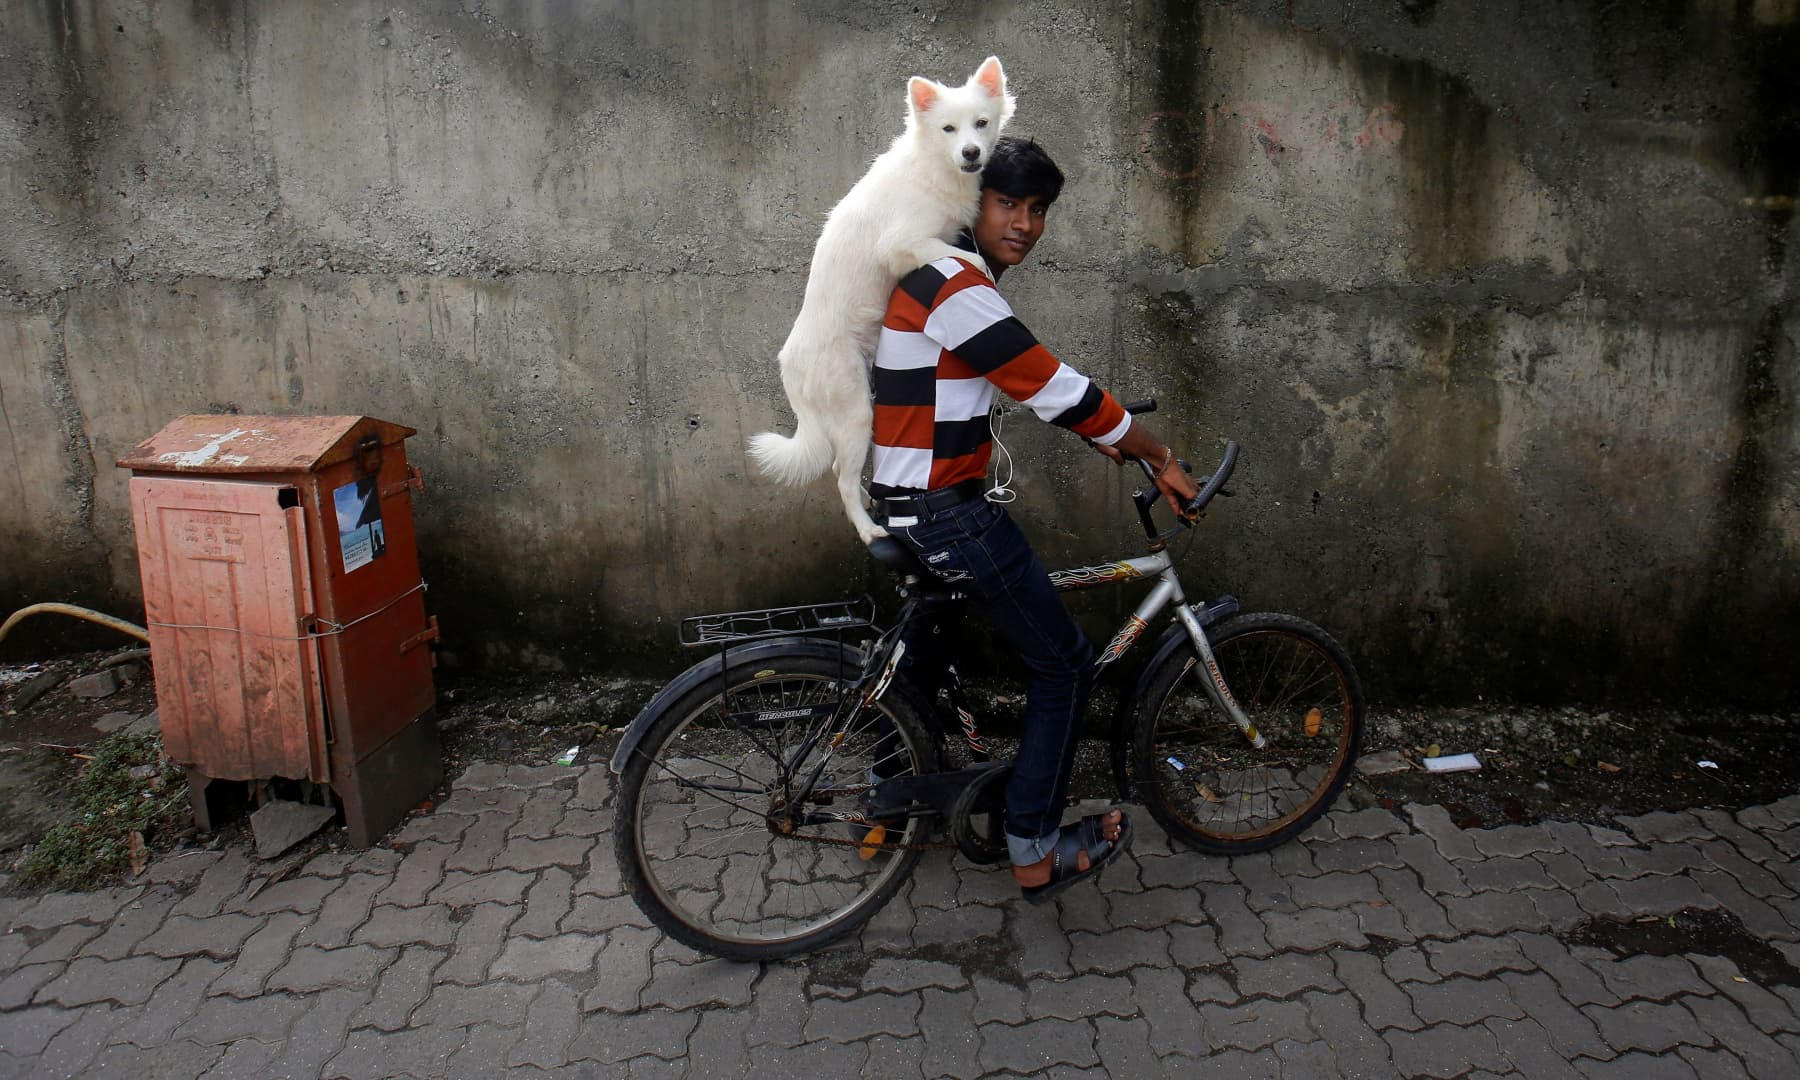 A man rides a bicycle as he carries his dog on his shoulders in Mumbai, July 9, 2013. — Reuters/Danish Siddiqui